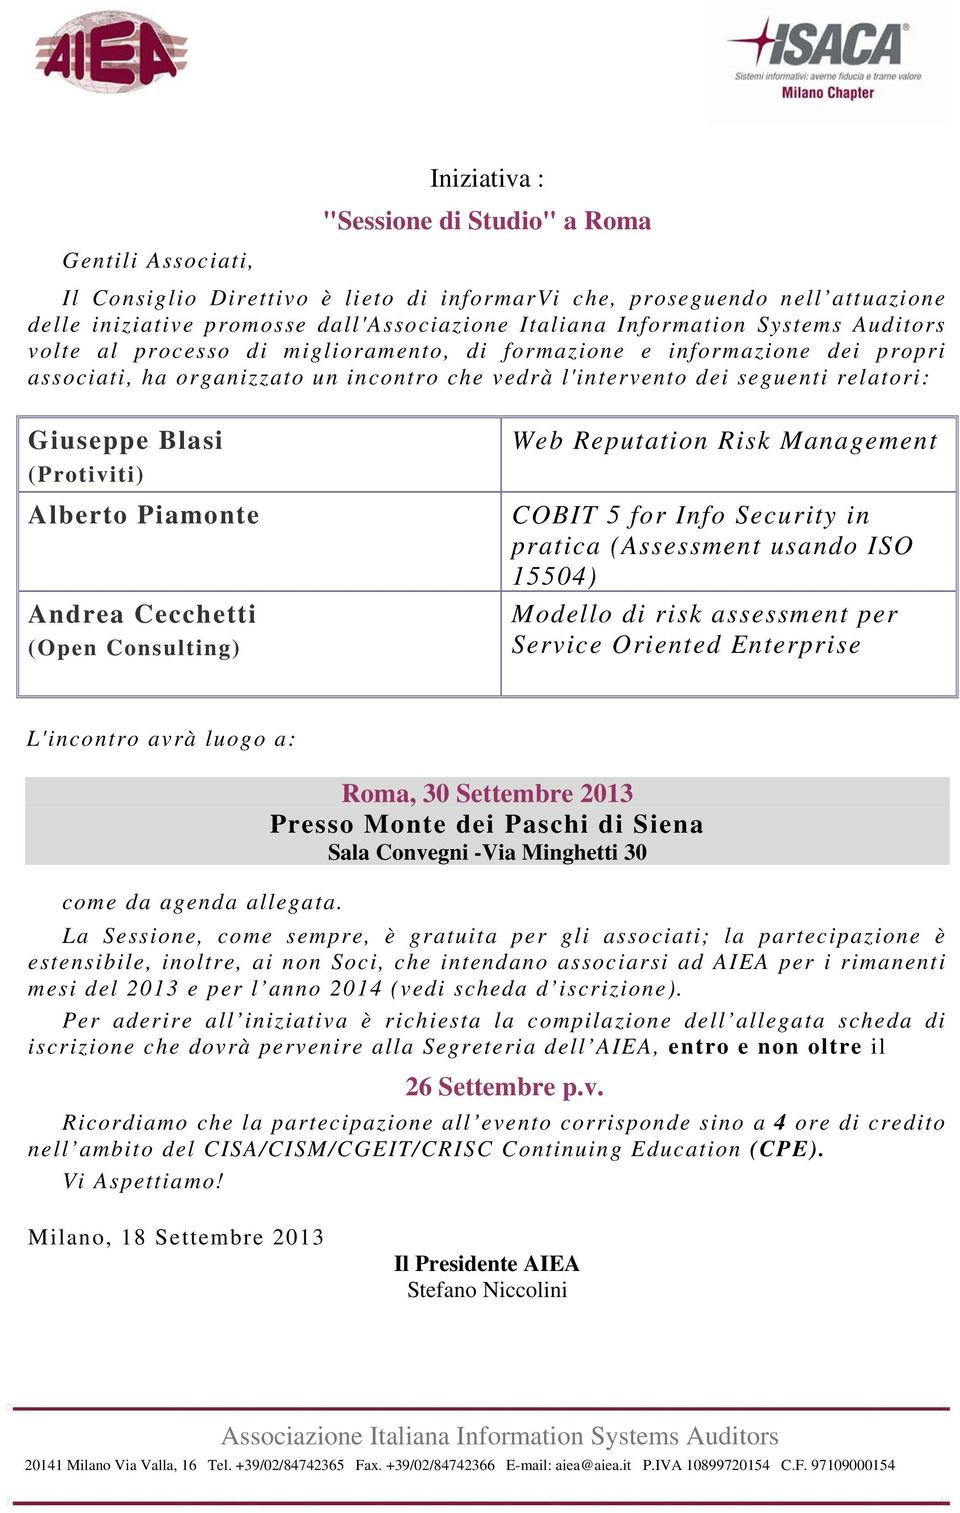 Consulting) Web Reputation Risk Management COBIT 5 for Info Security in pratica (Assessment usando ISO 15504) Modello di risk assessment per Service Oriented Enterprise L'incontro avrà luogo a: Roma,